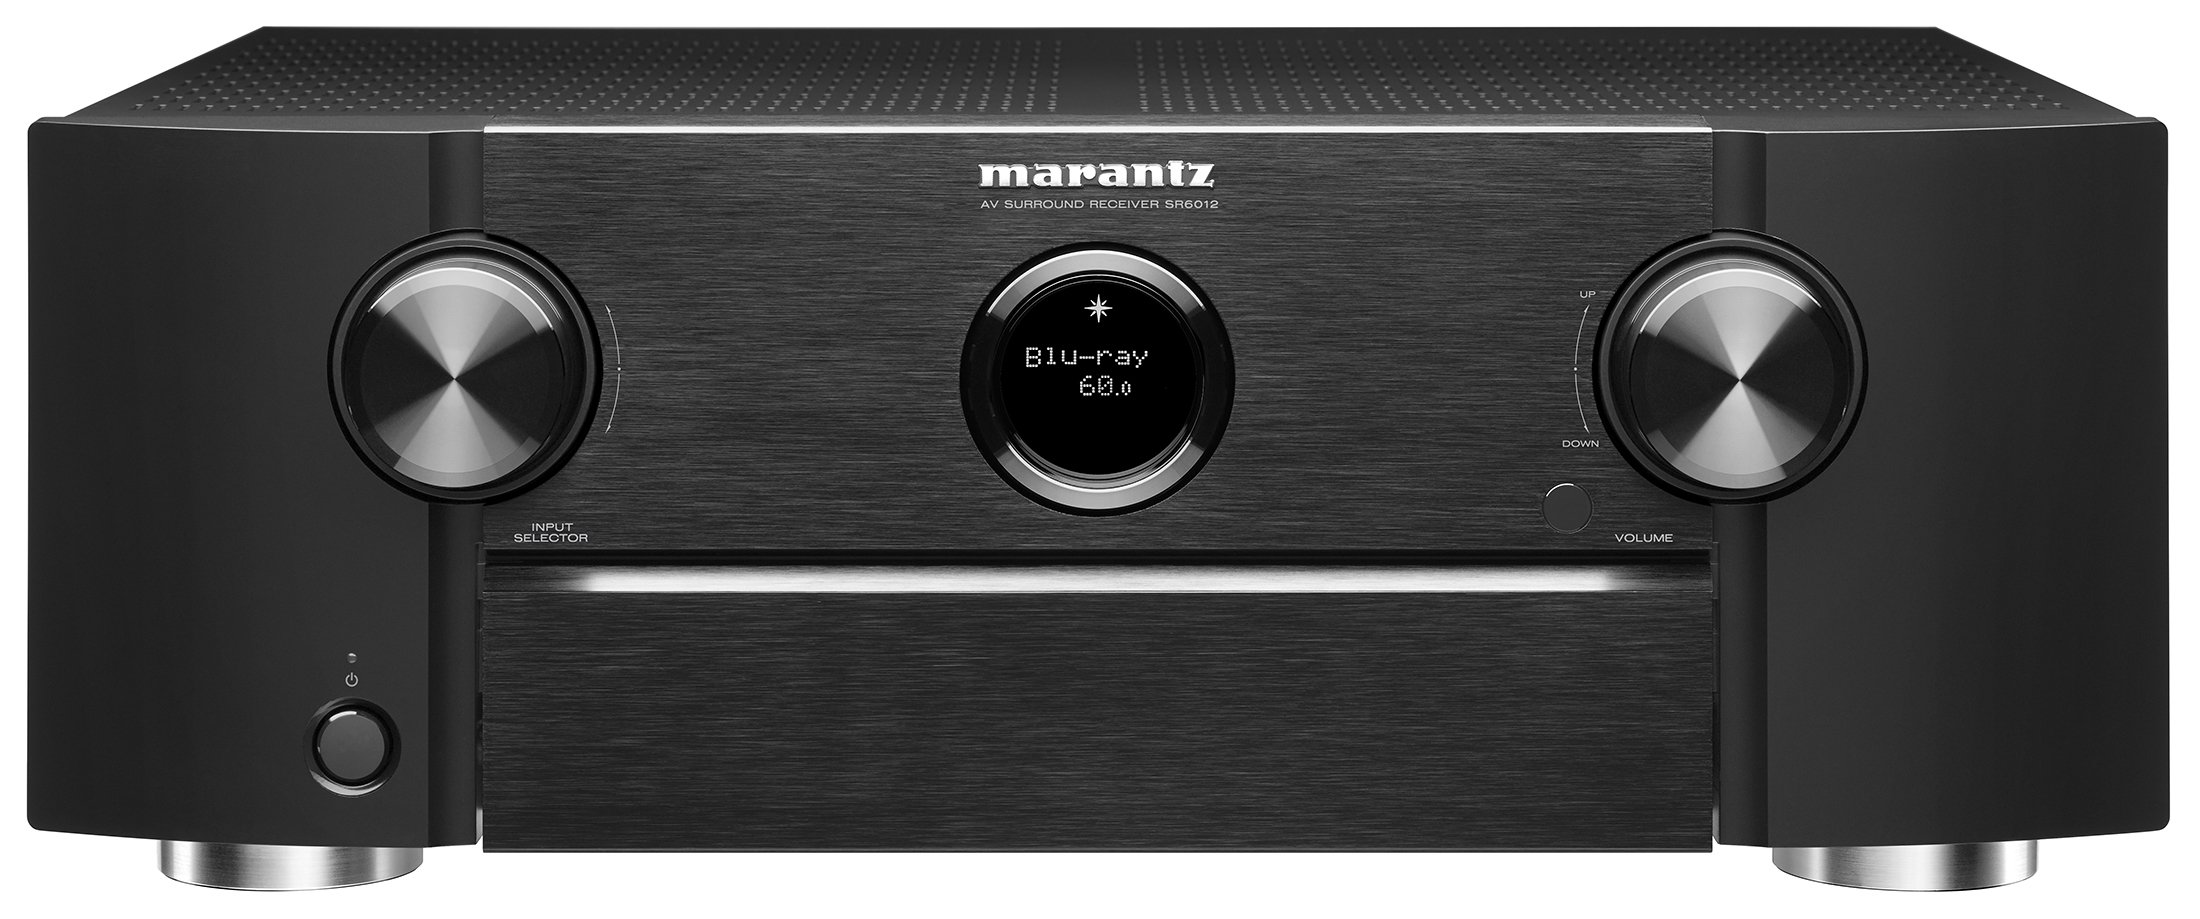 Marantz SR6012 9.2 Channel Full 4K Ultra HD Network AV Surround Receiver with HEOS black, Works with Alexa (Discontinued by Manufacturer)